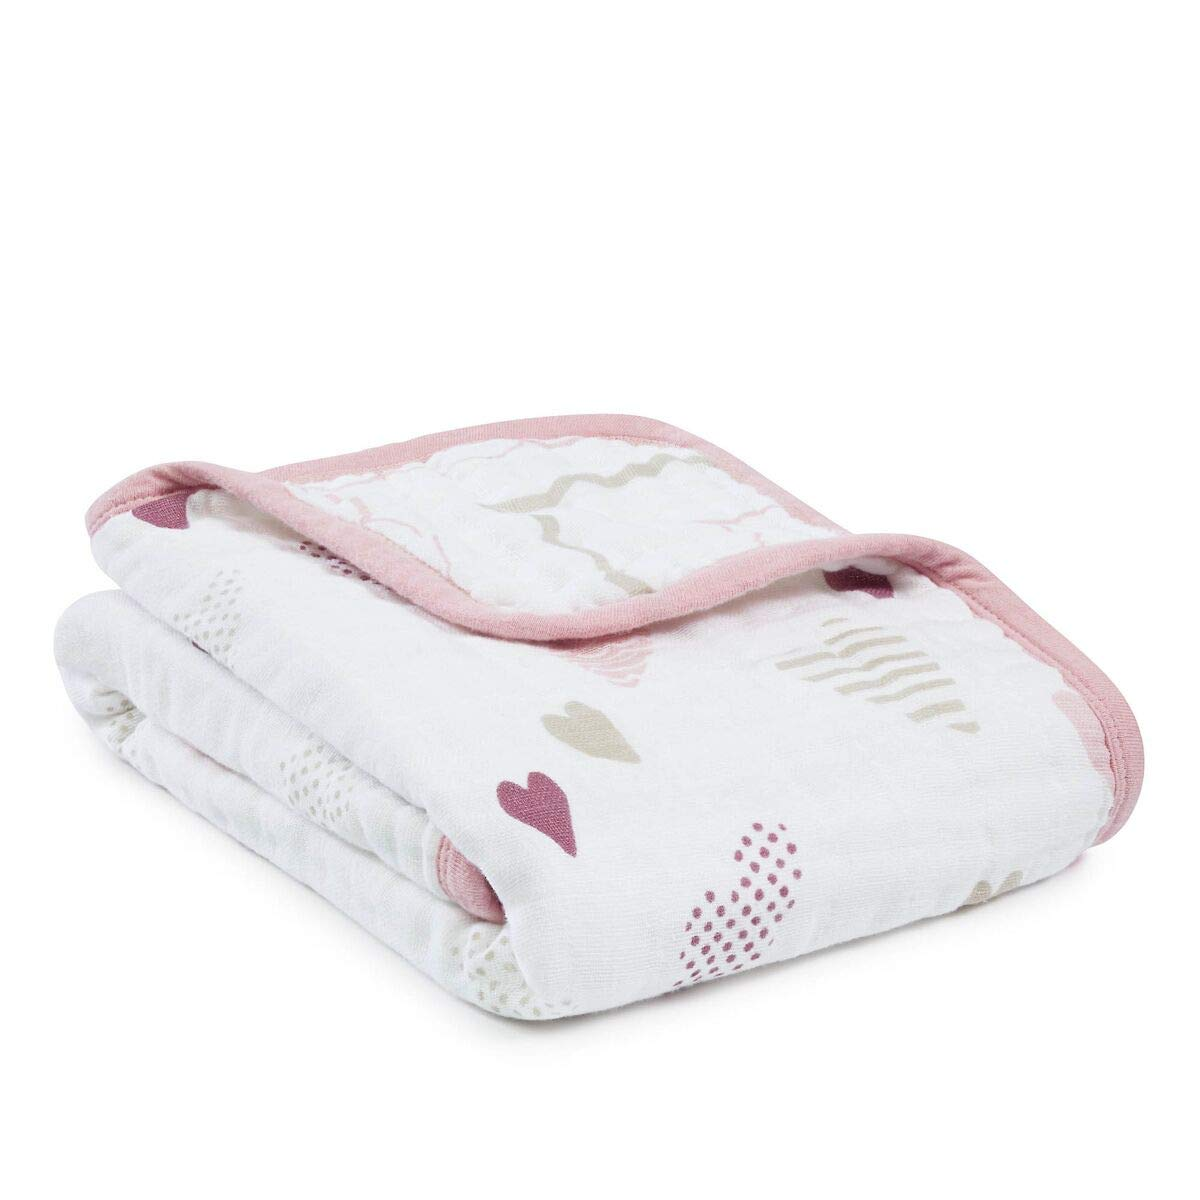 aden + anais Classic Stroller Blanket, 100% Cotton Muslin, 4 Layer lightweight and breathable, 27.5 X 27.5 inch, Heartbreaker, Pink